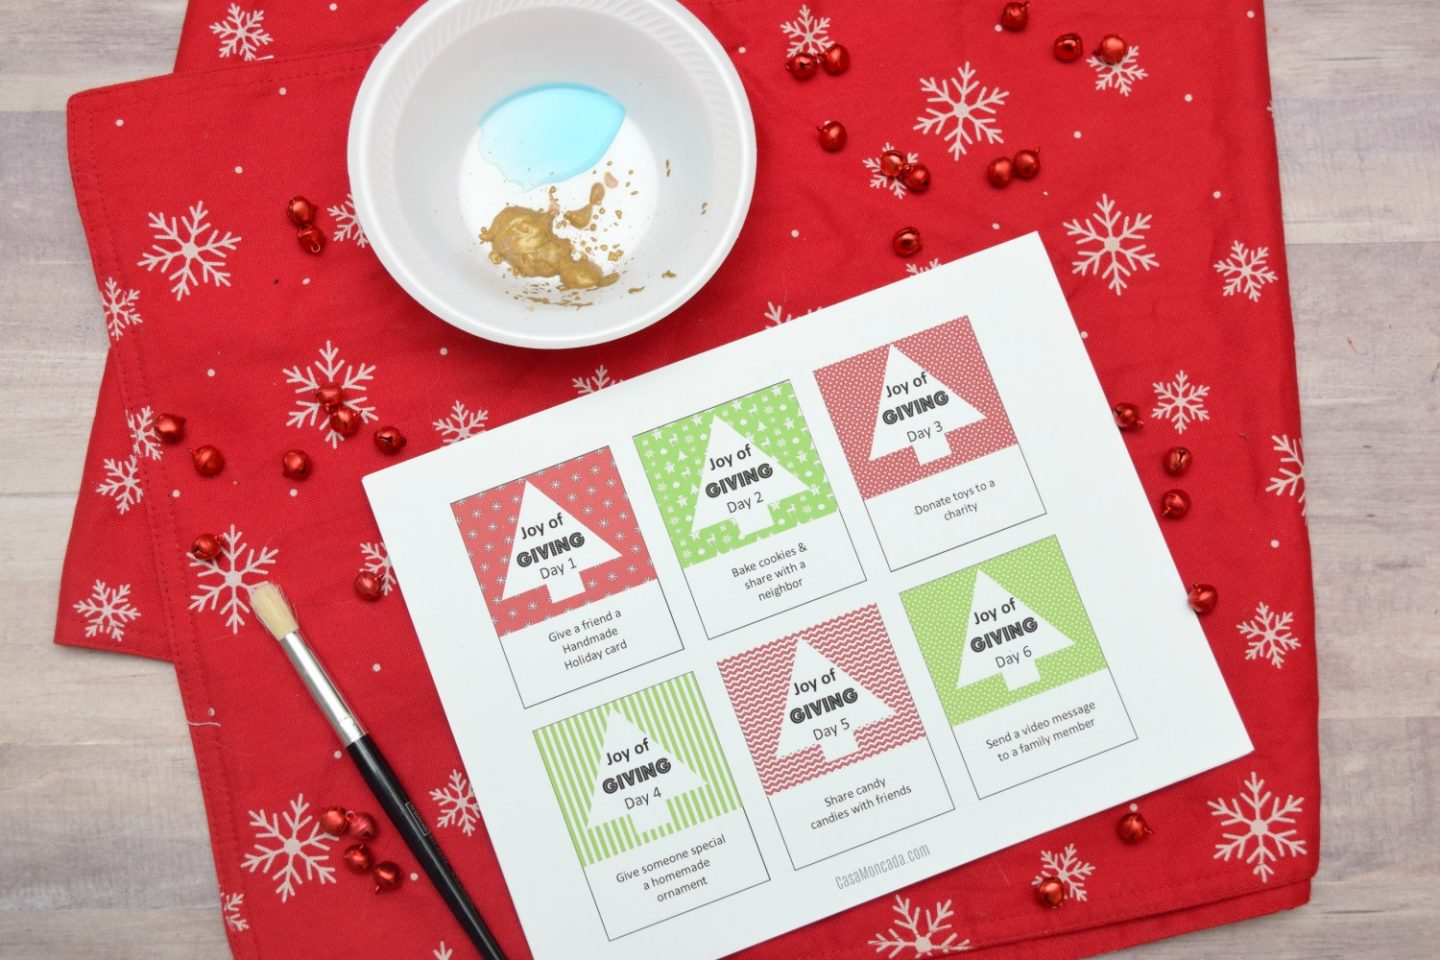 Make Your Own Scratch-off Cards